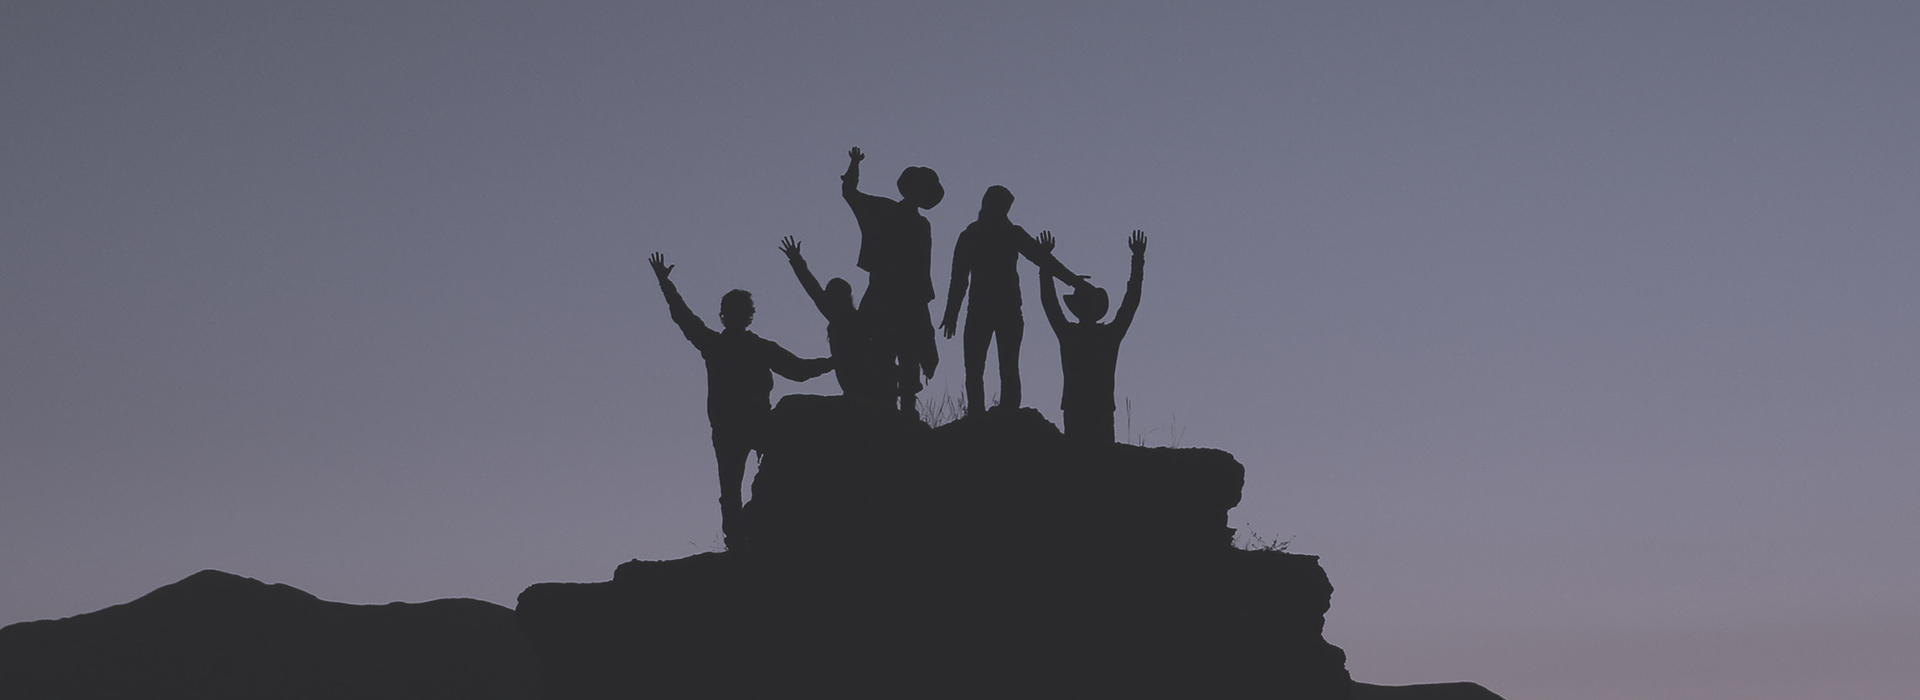 Silhouettes of people cheering at top of mountain